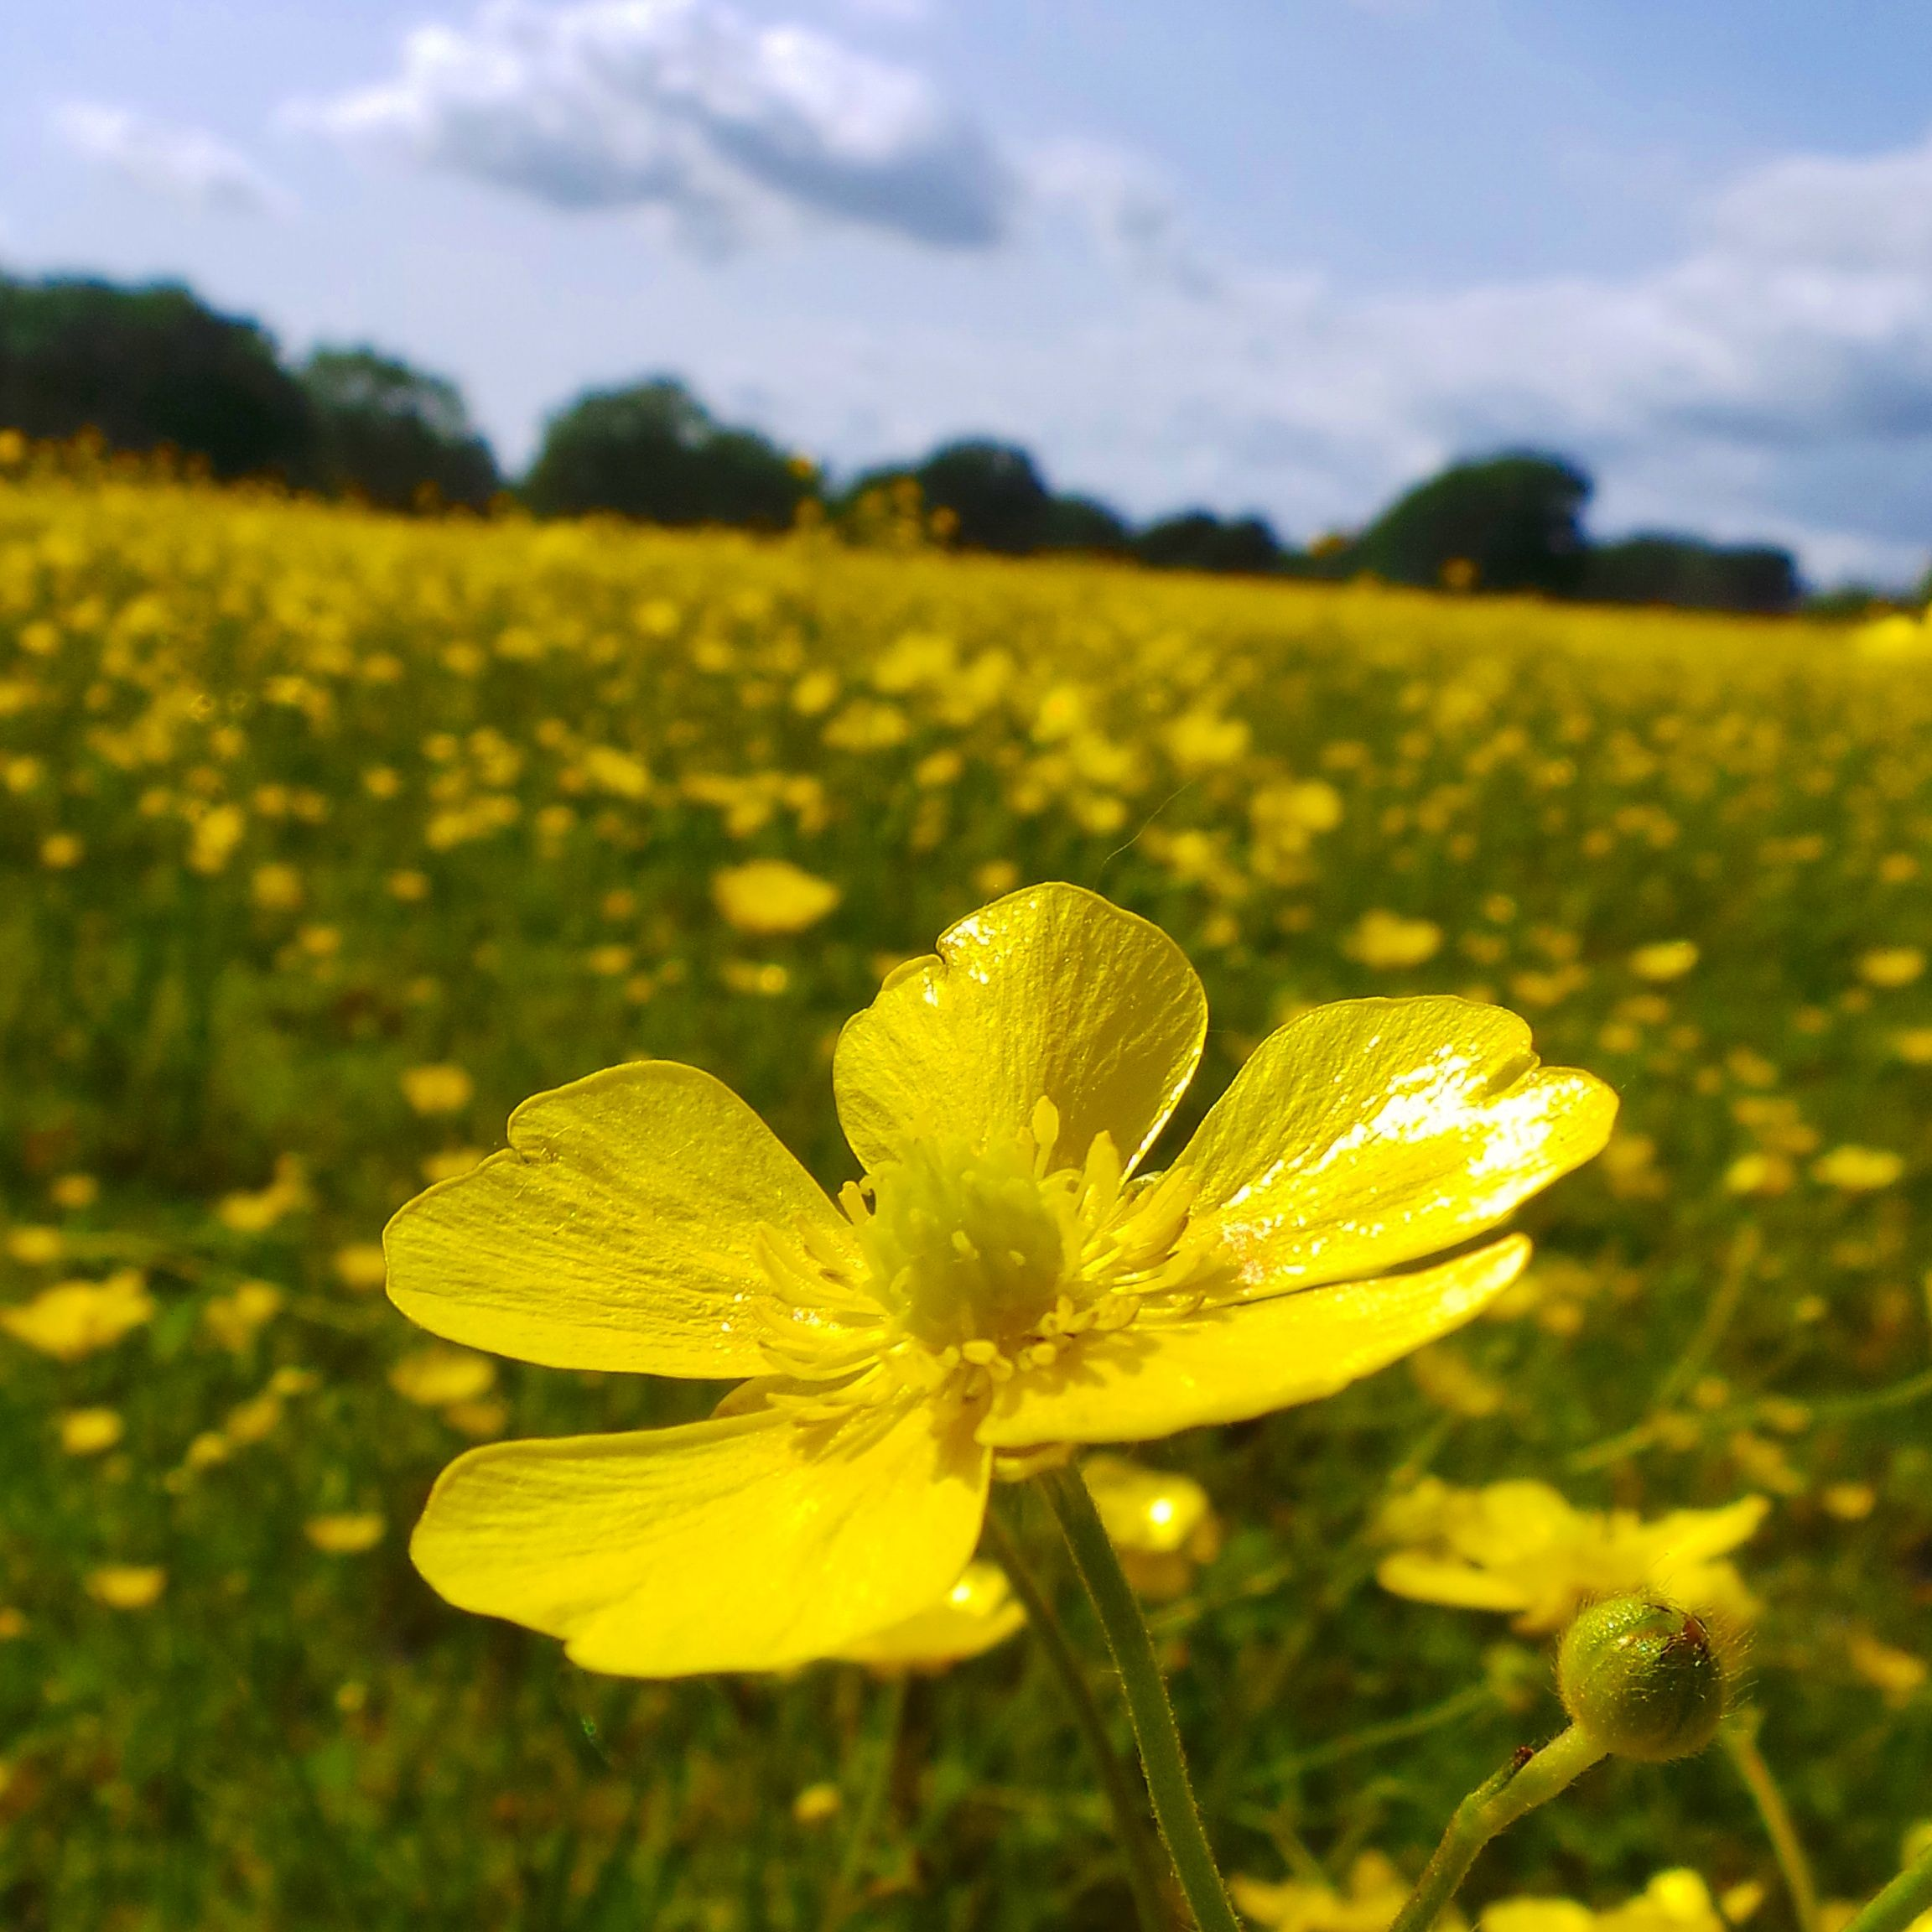 A single buttercup during my South Downs cycle in Sussex.. #view #nature #buttercup #southeast #greenfield #seeds #bright #contrast #summer #flowers #southdowns #nationaltrust #landscape #landmark #fields #agriculture #england #sussex #beautyspot #clouds #cloudscape #sky #bluesky